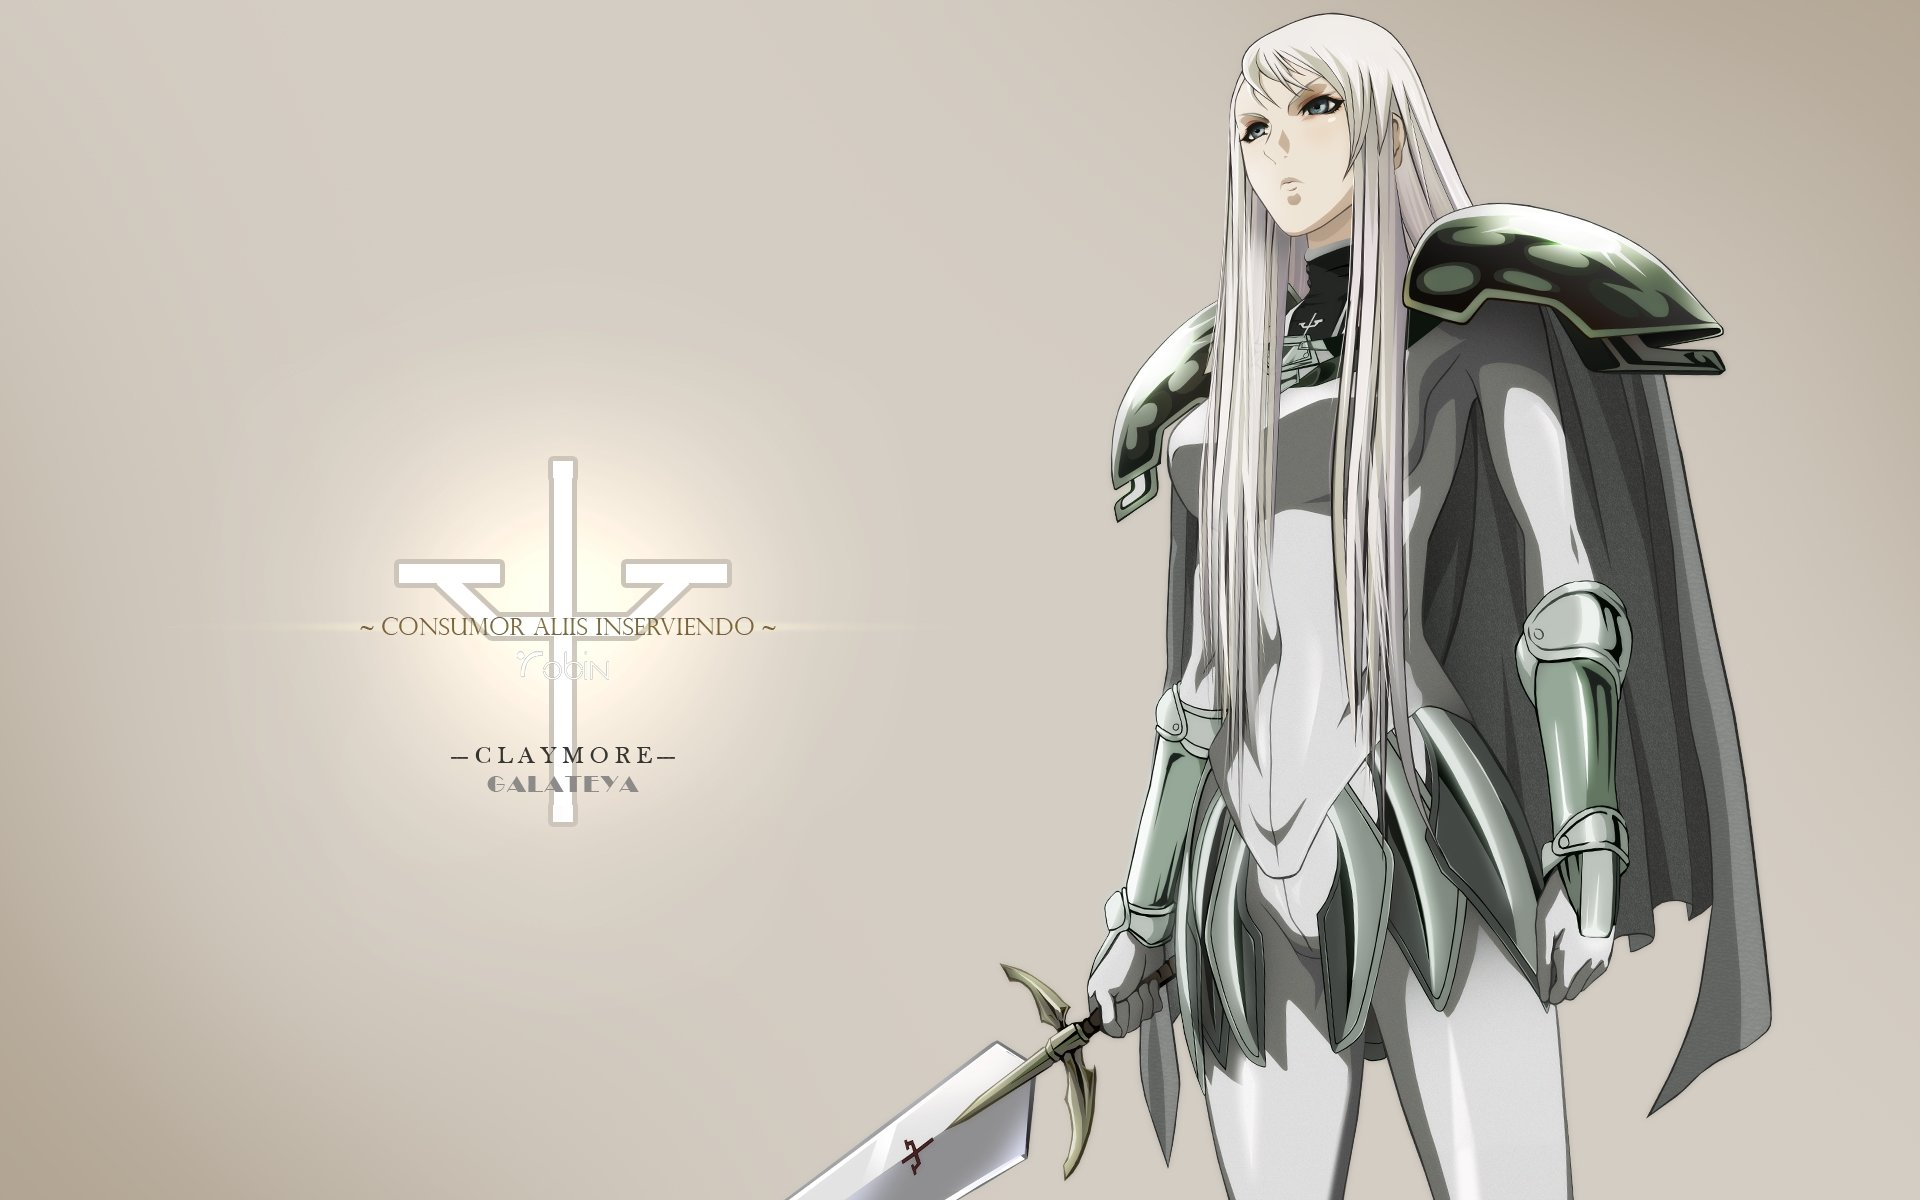 Download hd 1920x1200 Claymore desktop background ID:351326 for free